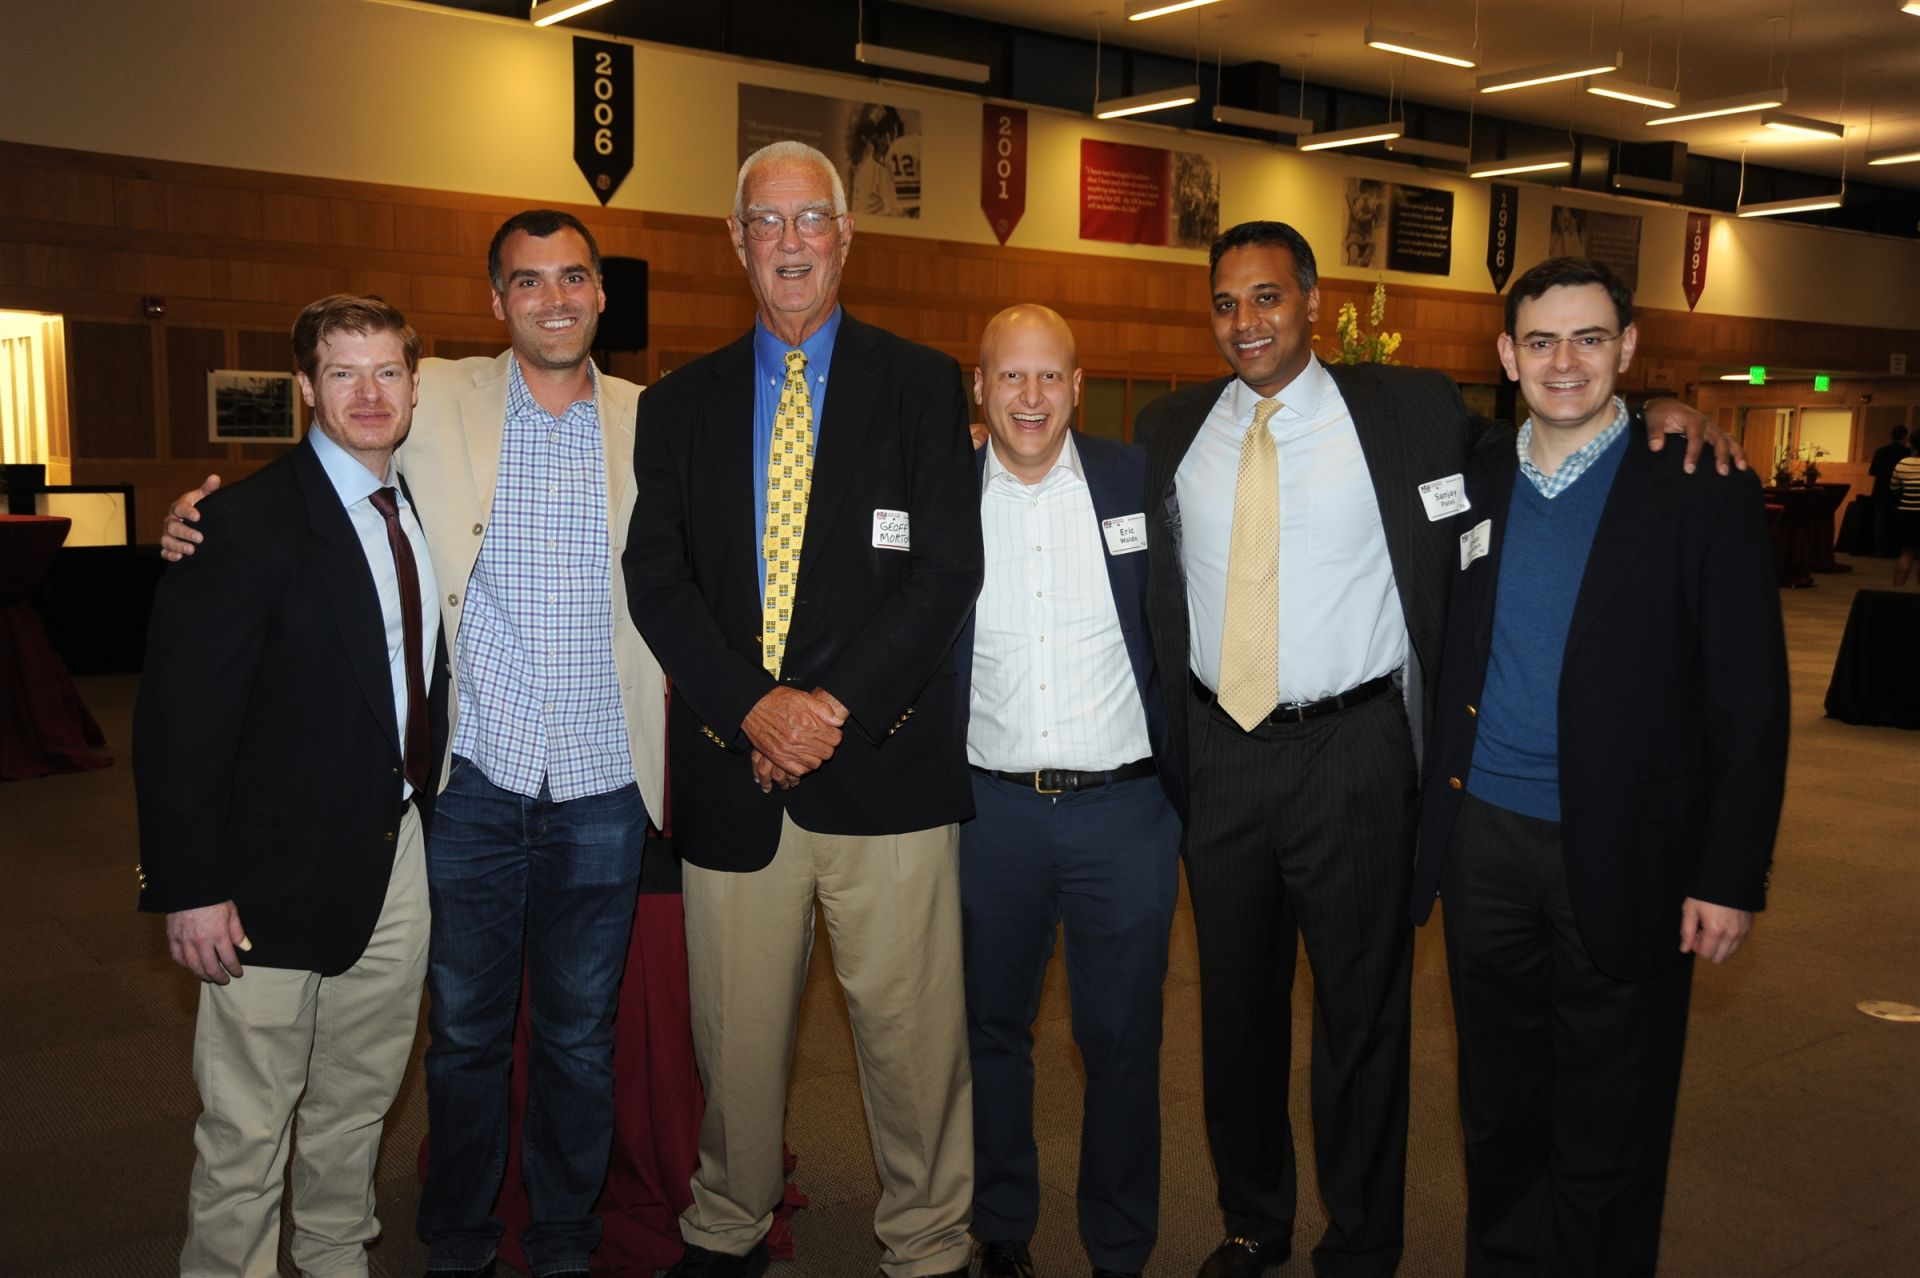 Members of the Class of 1996 with former faculty member Geoff Morton